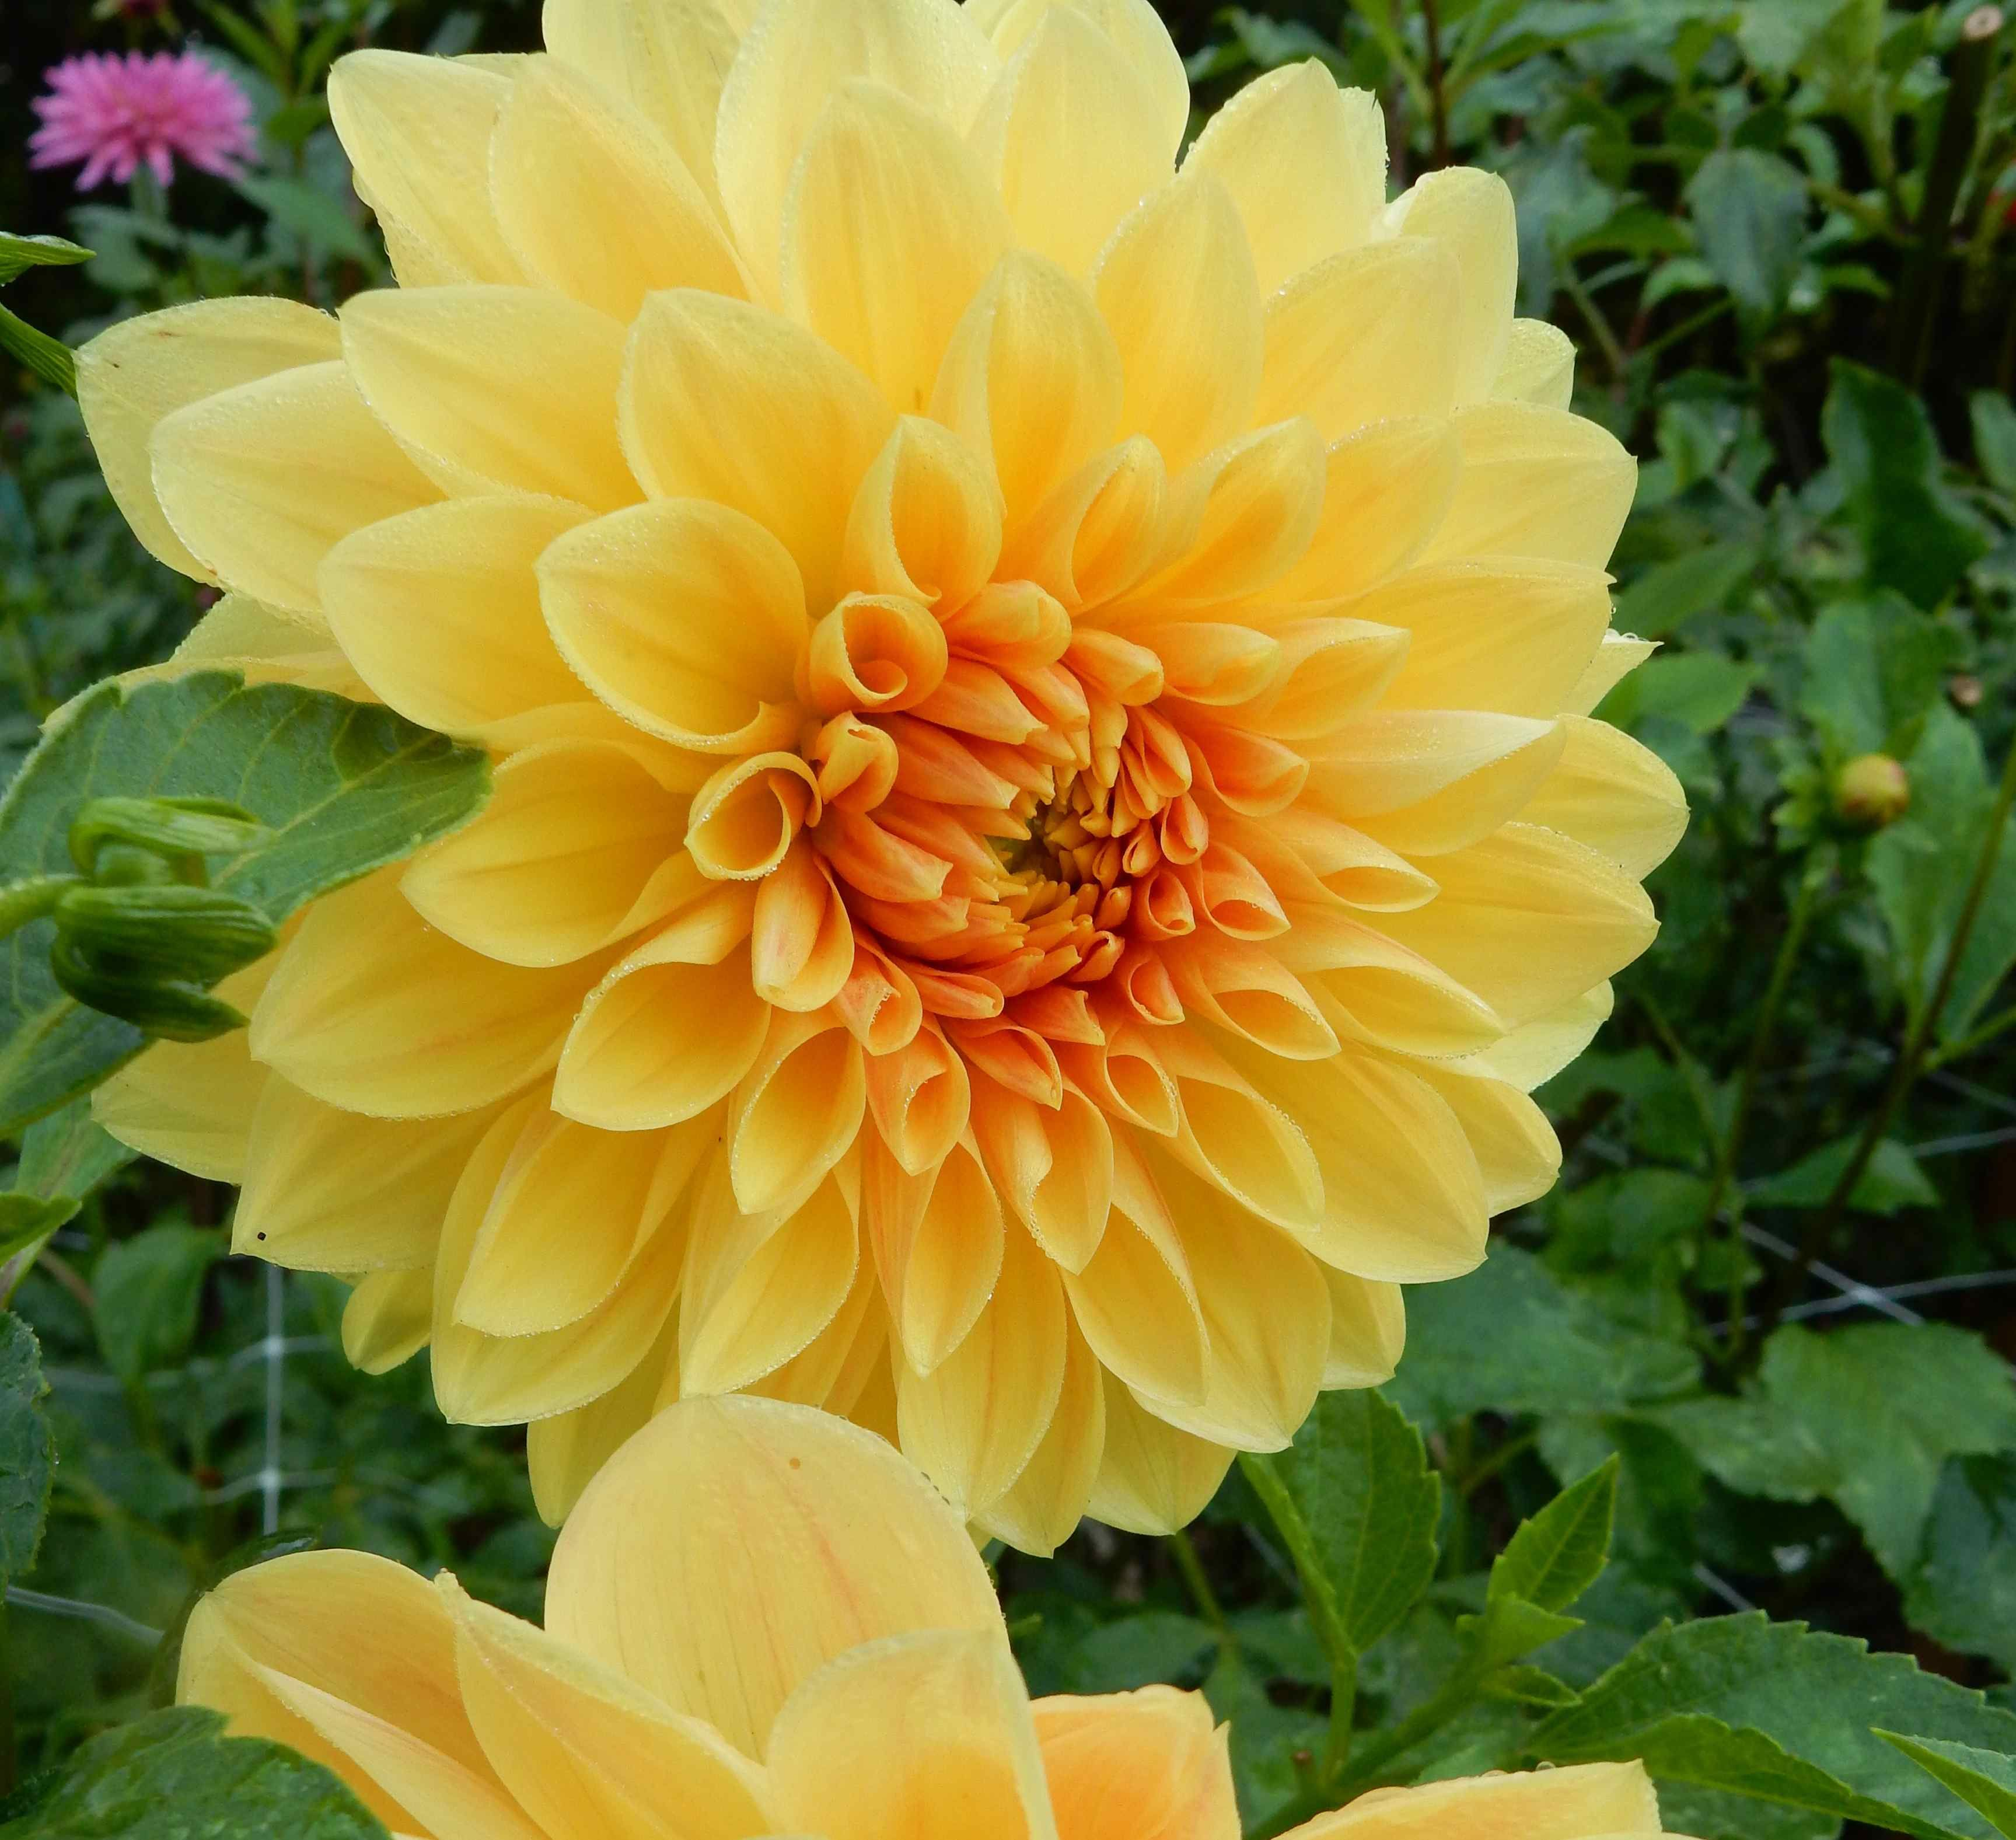 A beautiful yellow dahlia growing at fernrock farm delightful a beautiful yellow dahlia growing at fernrock farm izmirmasajfo